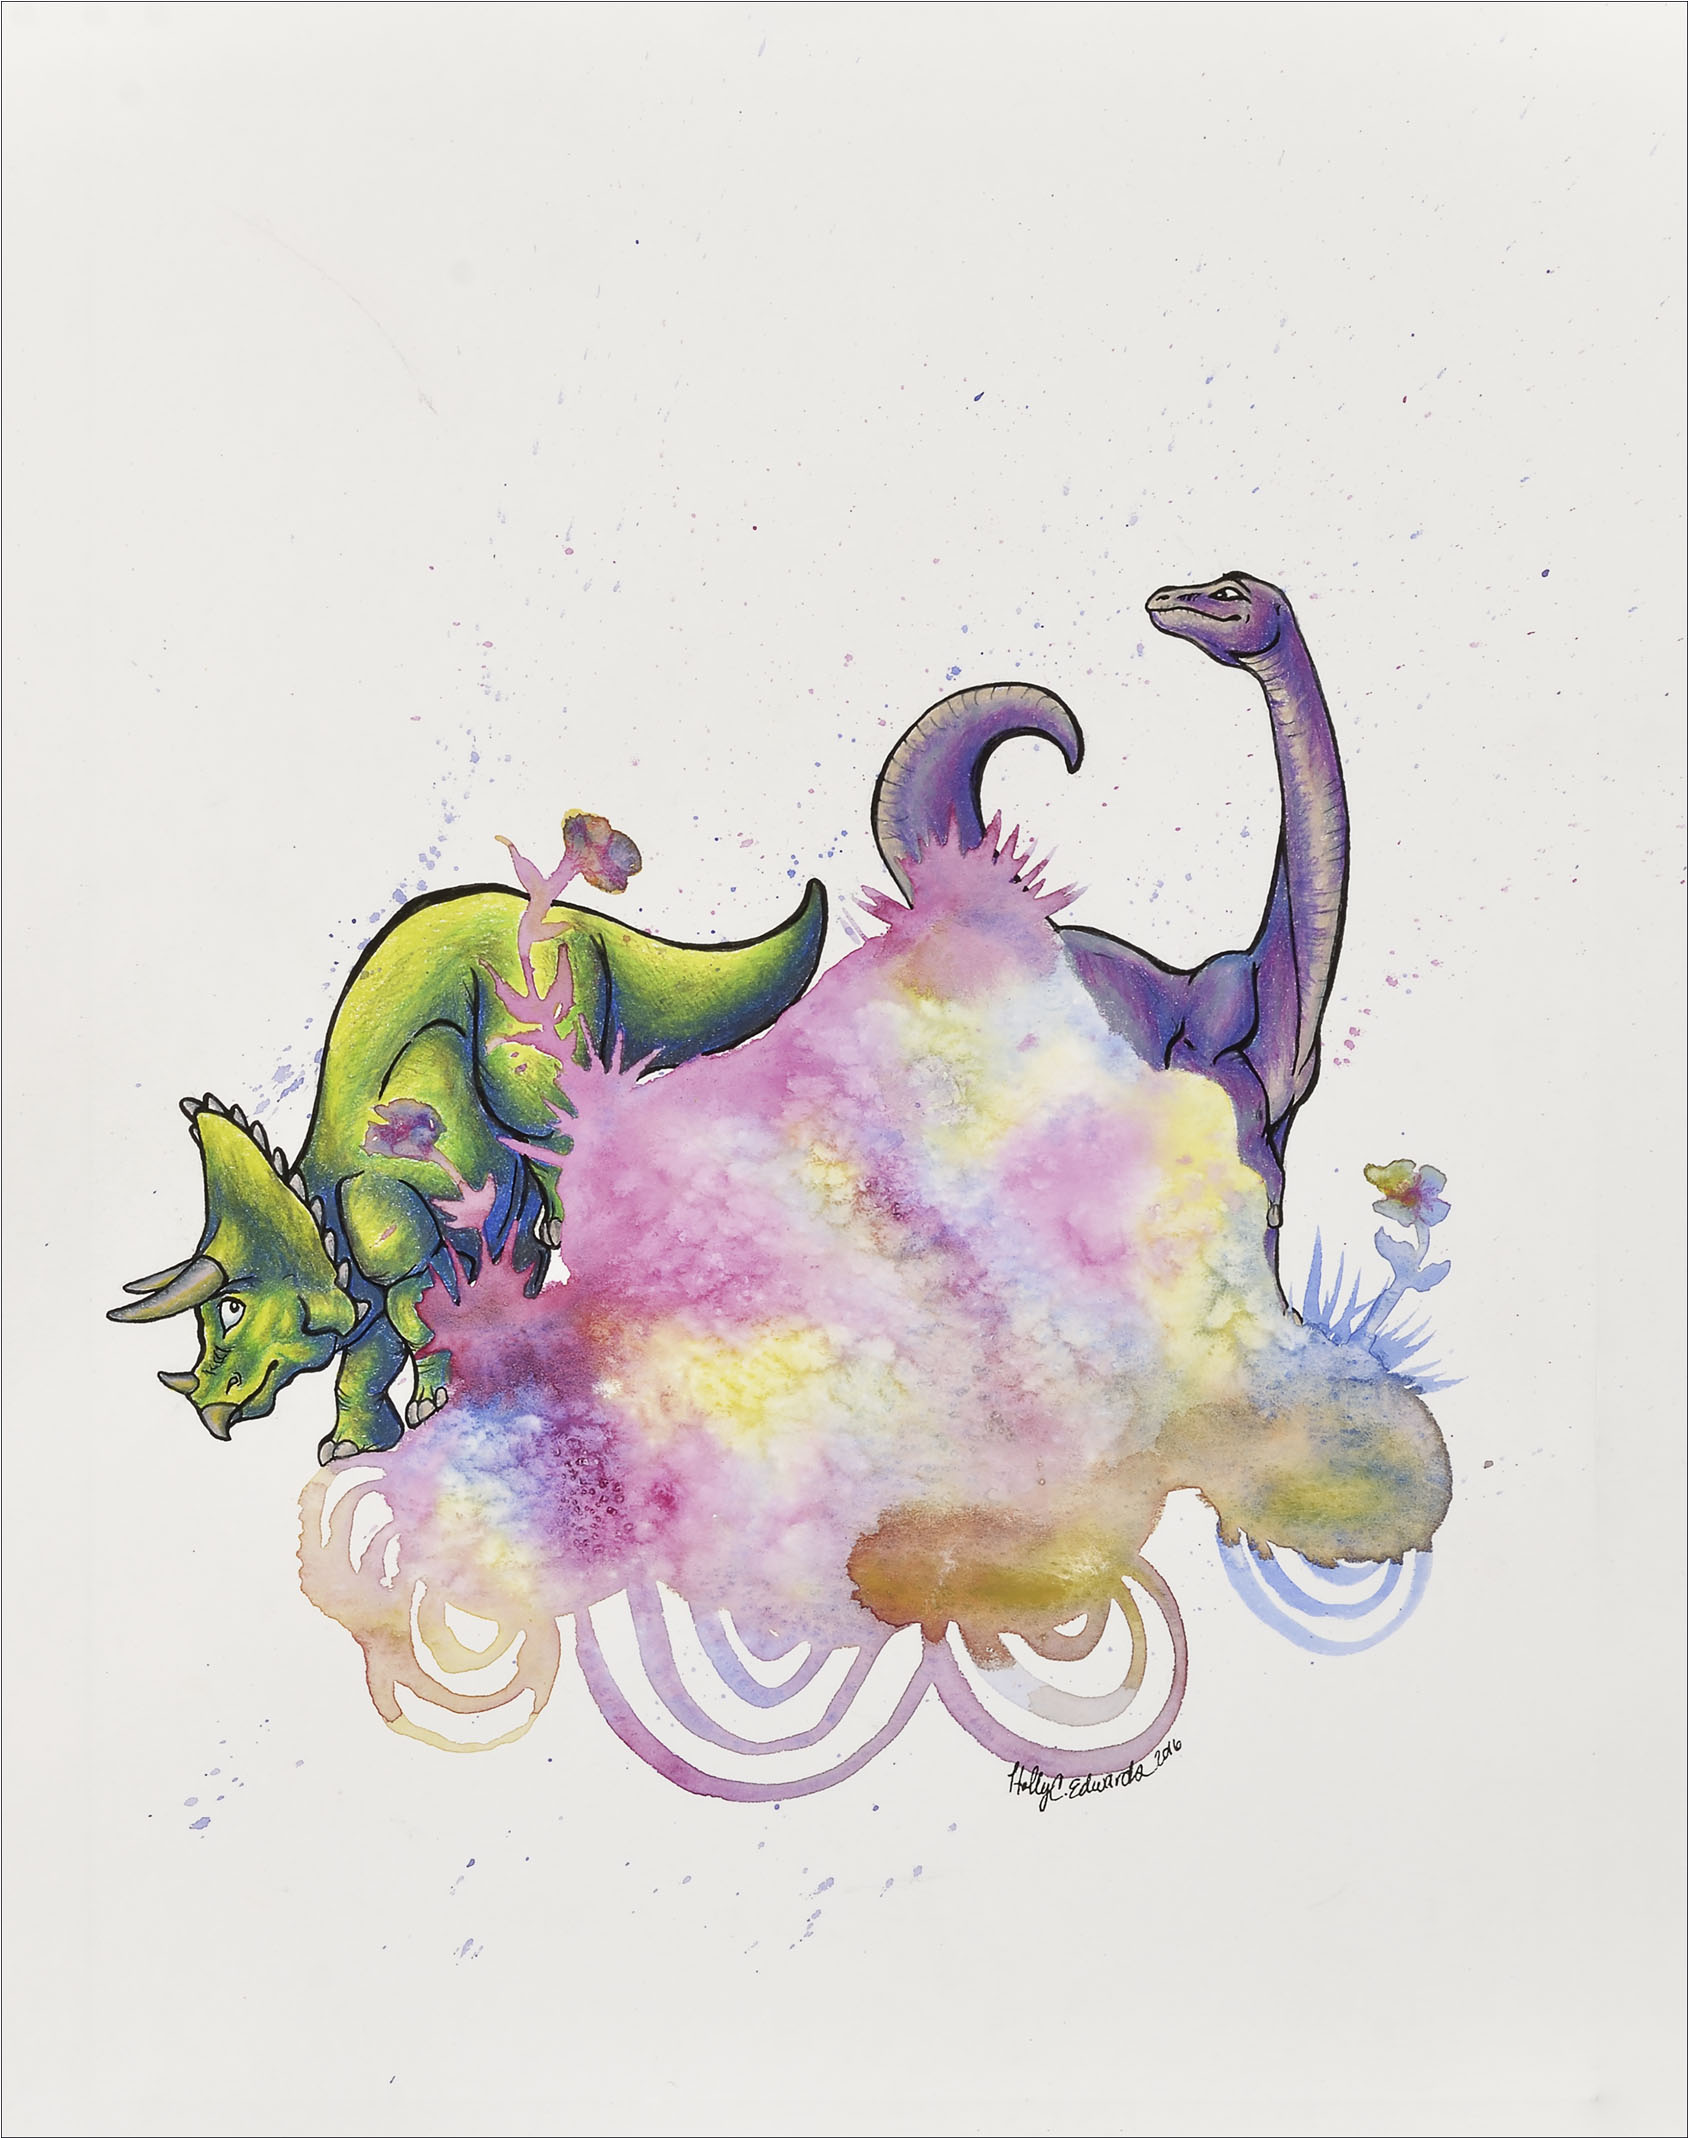 Land Before Time- Watercolor and Colored Pencil, Available